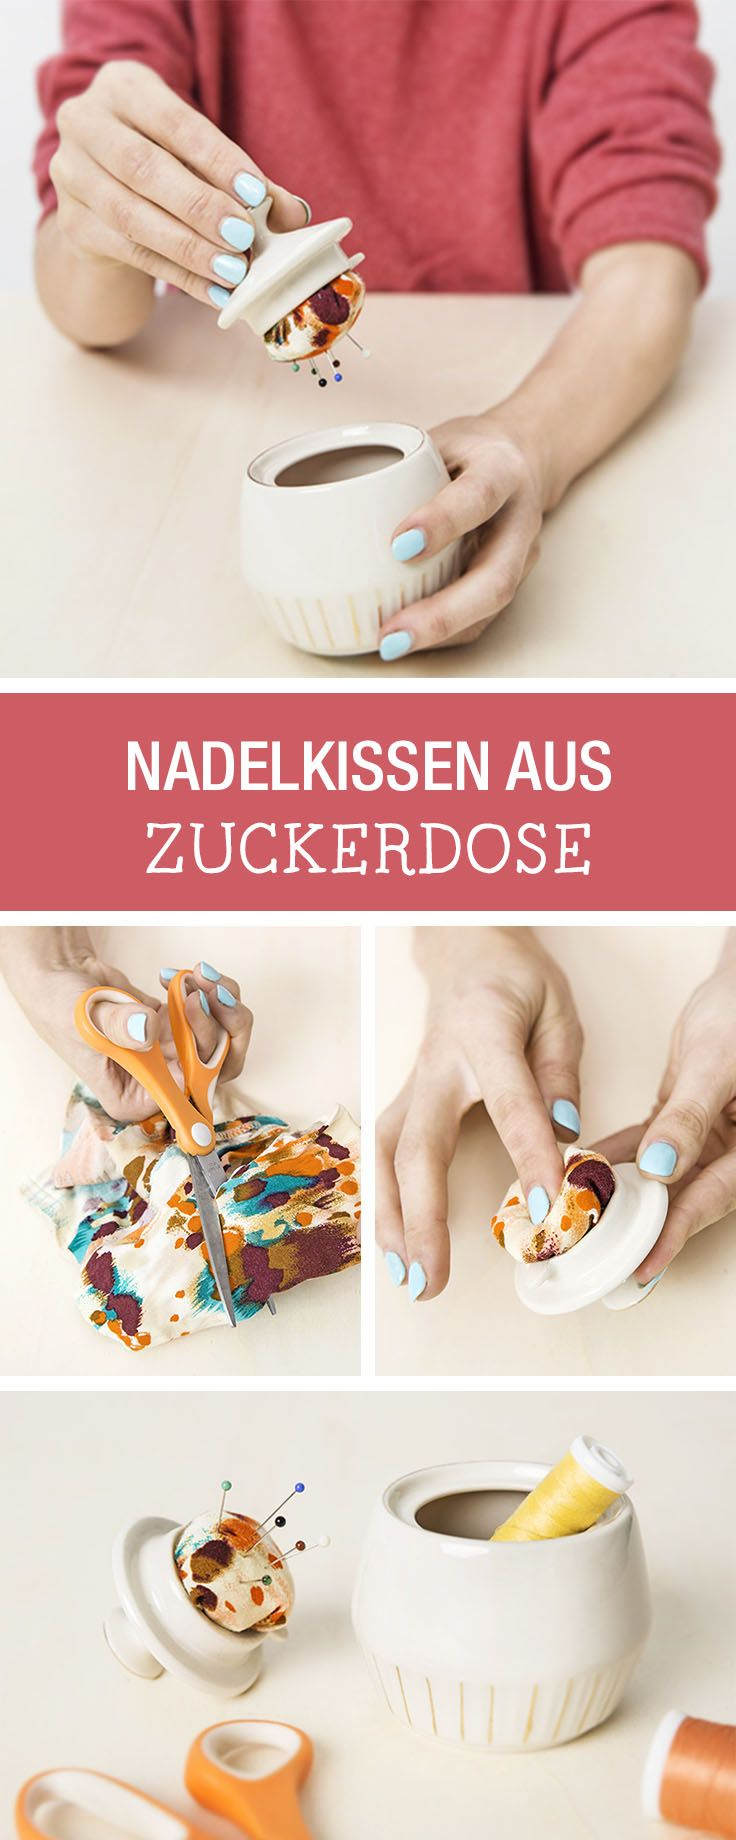 DIY-Anleitung: Praktisches Nadelkissen aus kleiner Zuckerdose basteln, Nähaccessoire / DIY tutorial: crafting cute pincushion out of little sugar bowl, sewing accessory via DaWanda.com